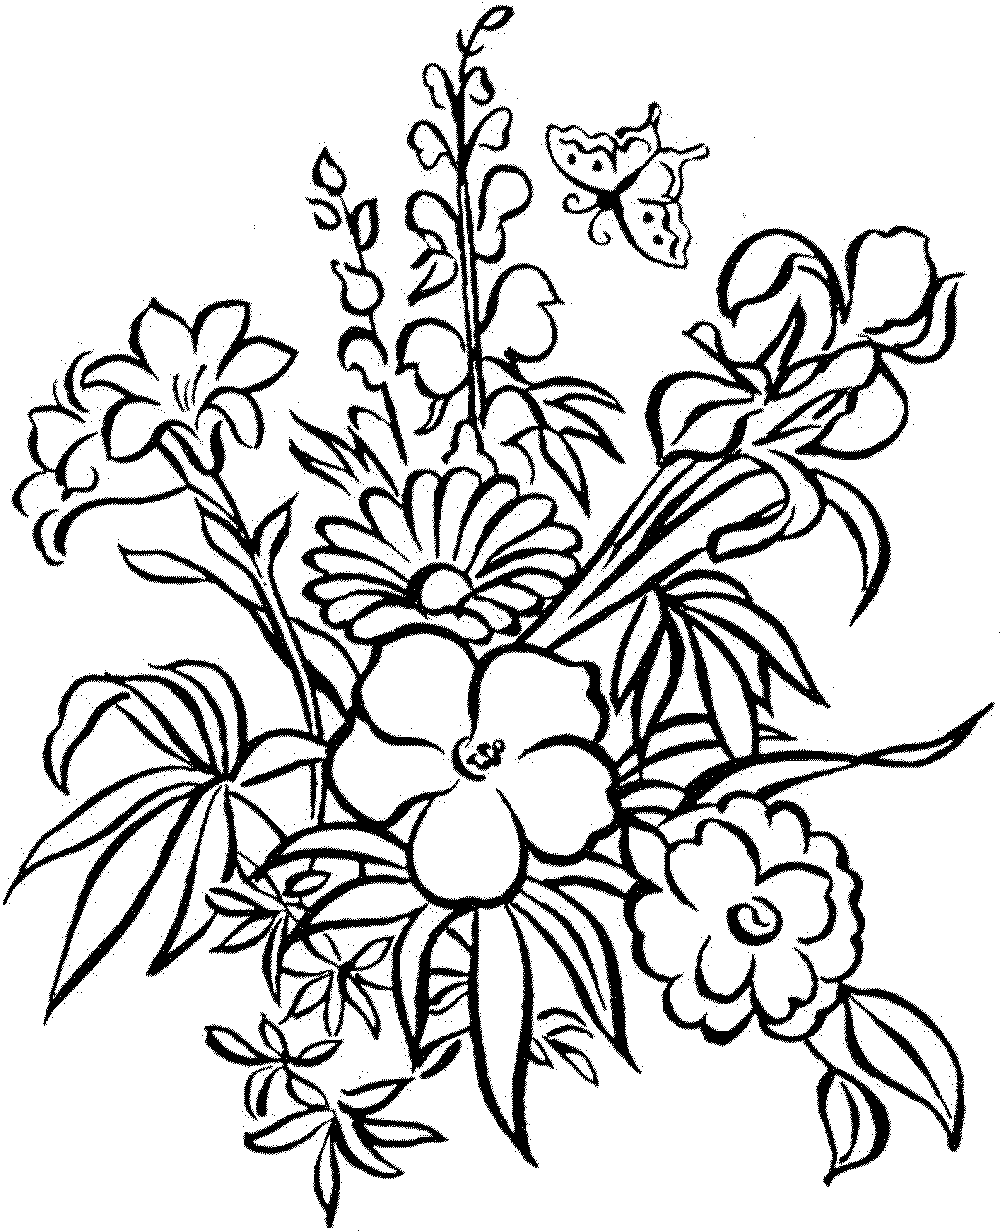 printable simple flower coloring pages detailed flower coloring pages to download and print for free pages simple printable flower coloring